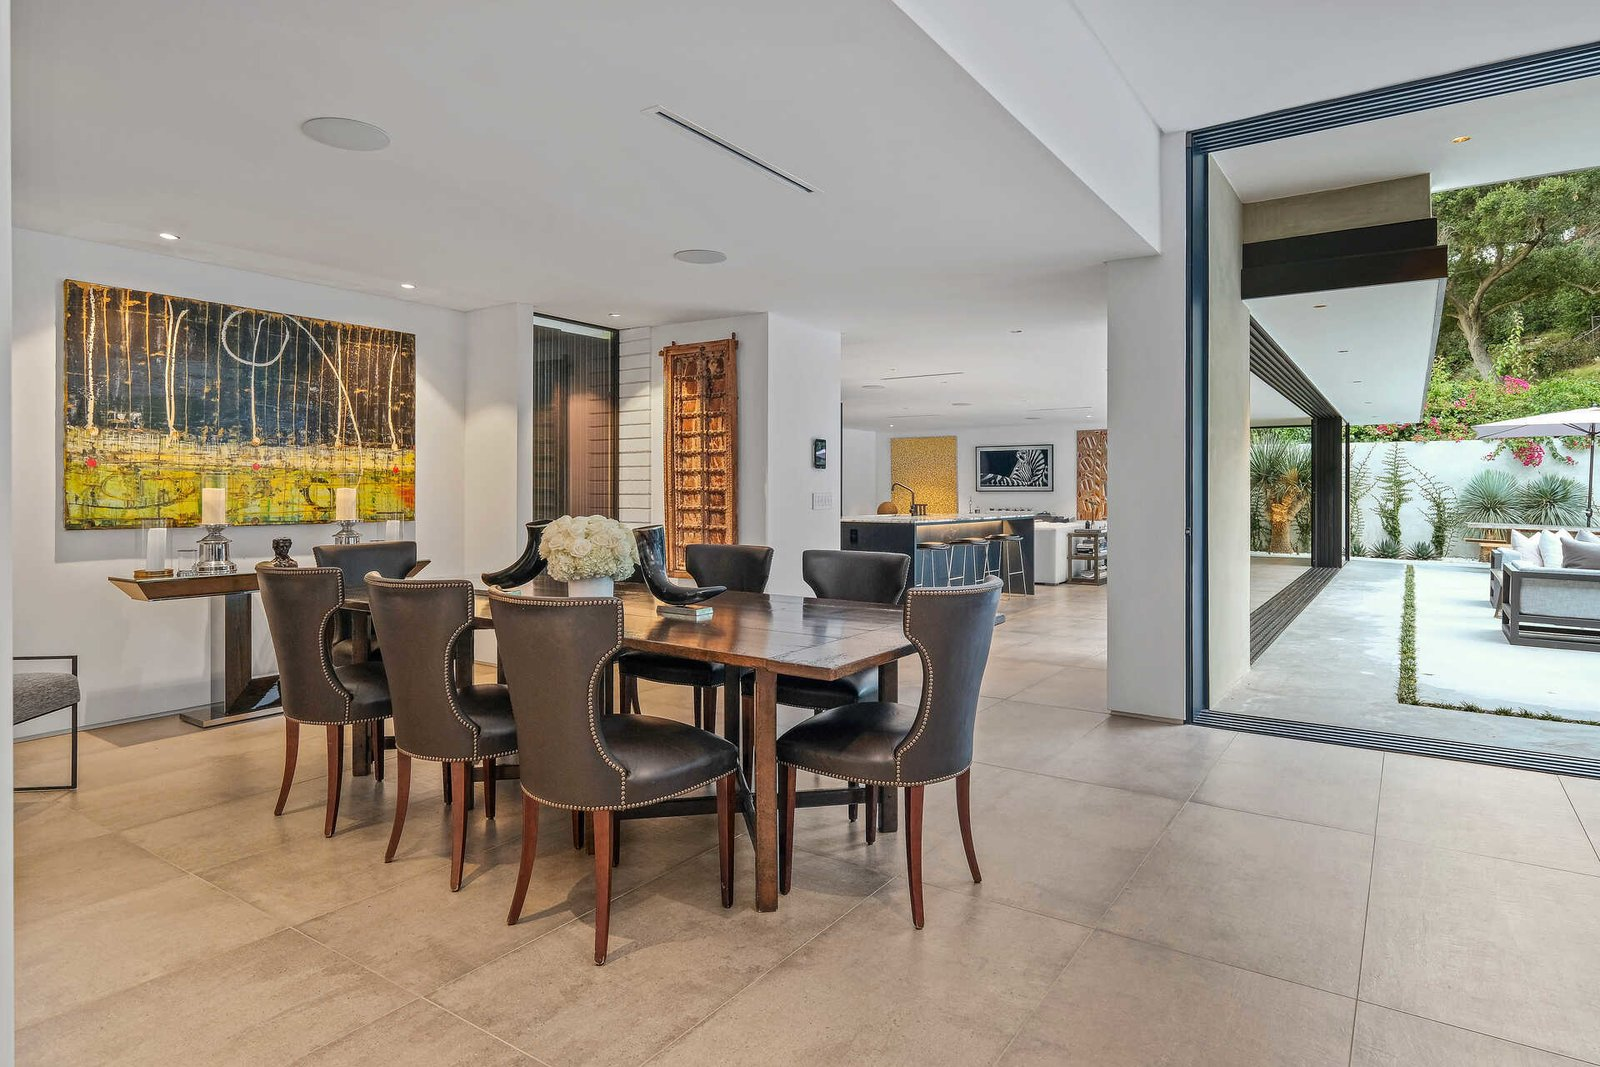 Living Room, Chair, Table, Concrete Floor, Cement Tile Floor, and Recessed Lighting  A Midcentury Modern Oasis in Bel Air